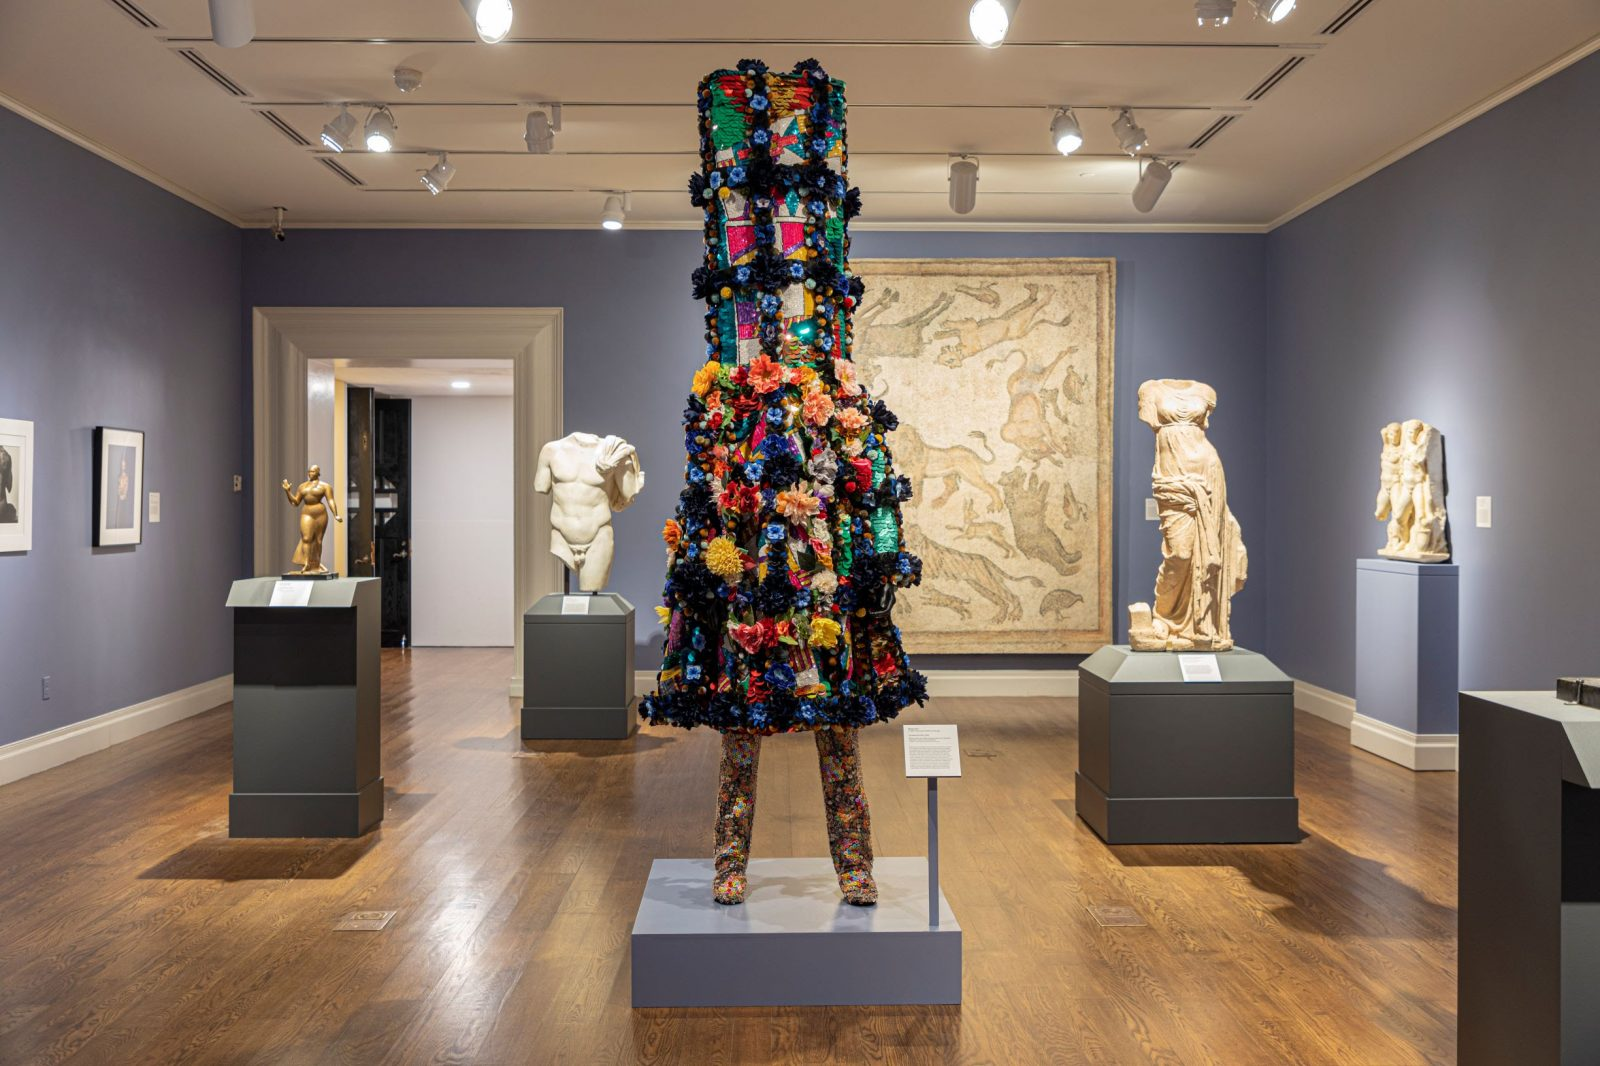 """Nick Cave (b. 1959. Lives and works in Chicago)  """"Soundsuit 8:46"""" (2021)  Mixed media including vintage textile and sequined appliqués, metal, and mannequin Photo courtesy Honolulu Museum of Art"""